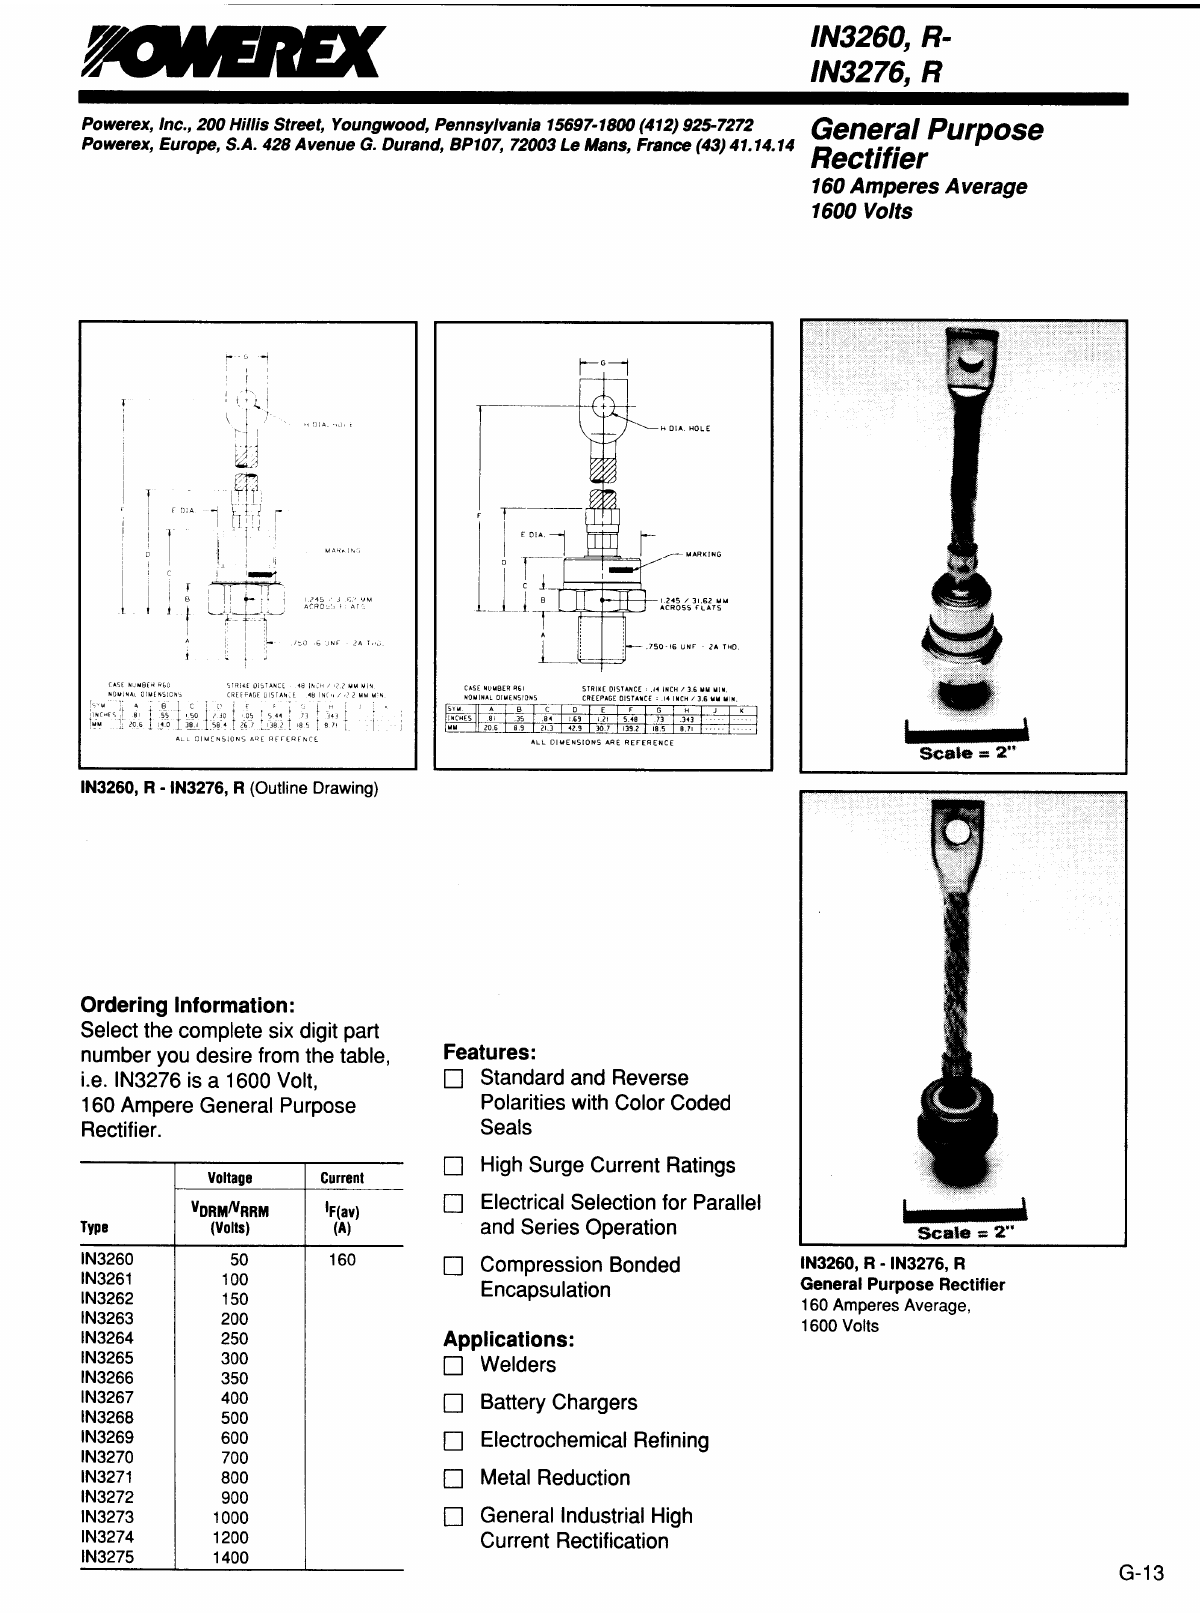 R-IN3263 datasheet